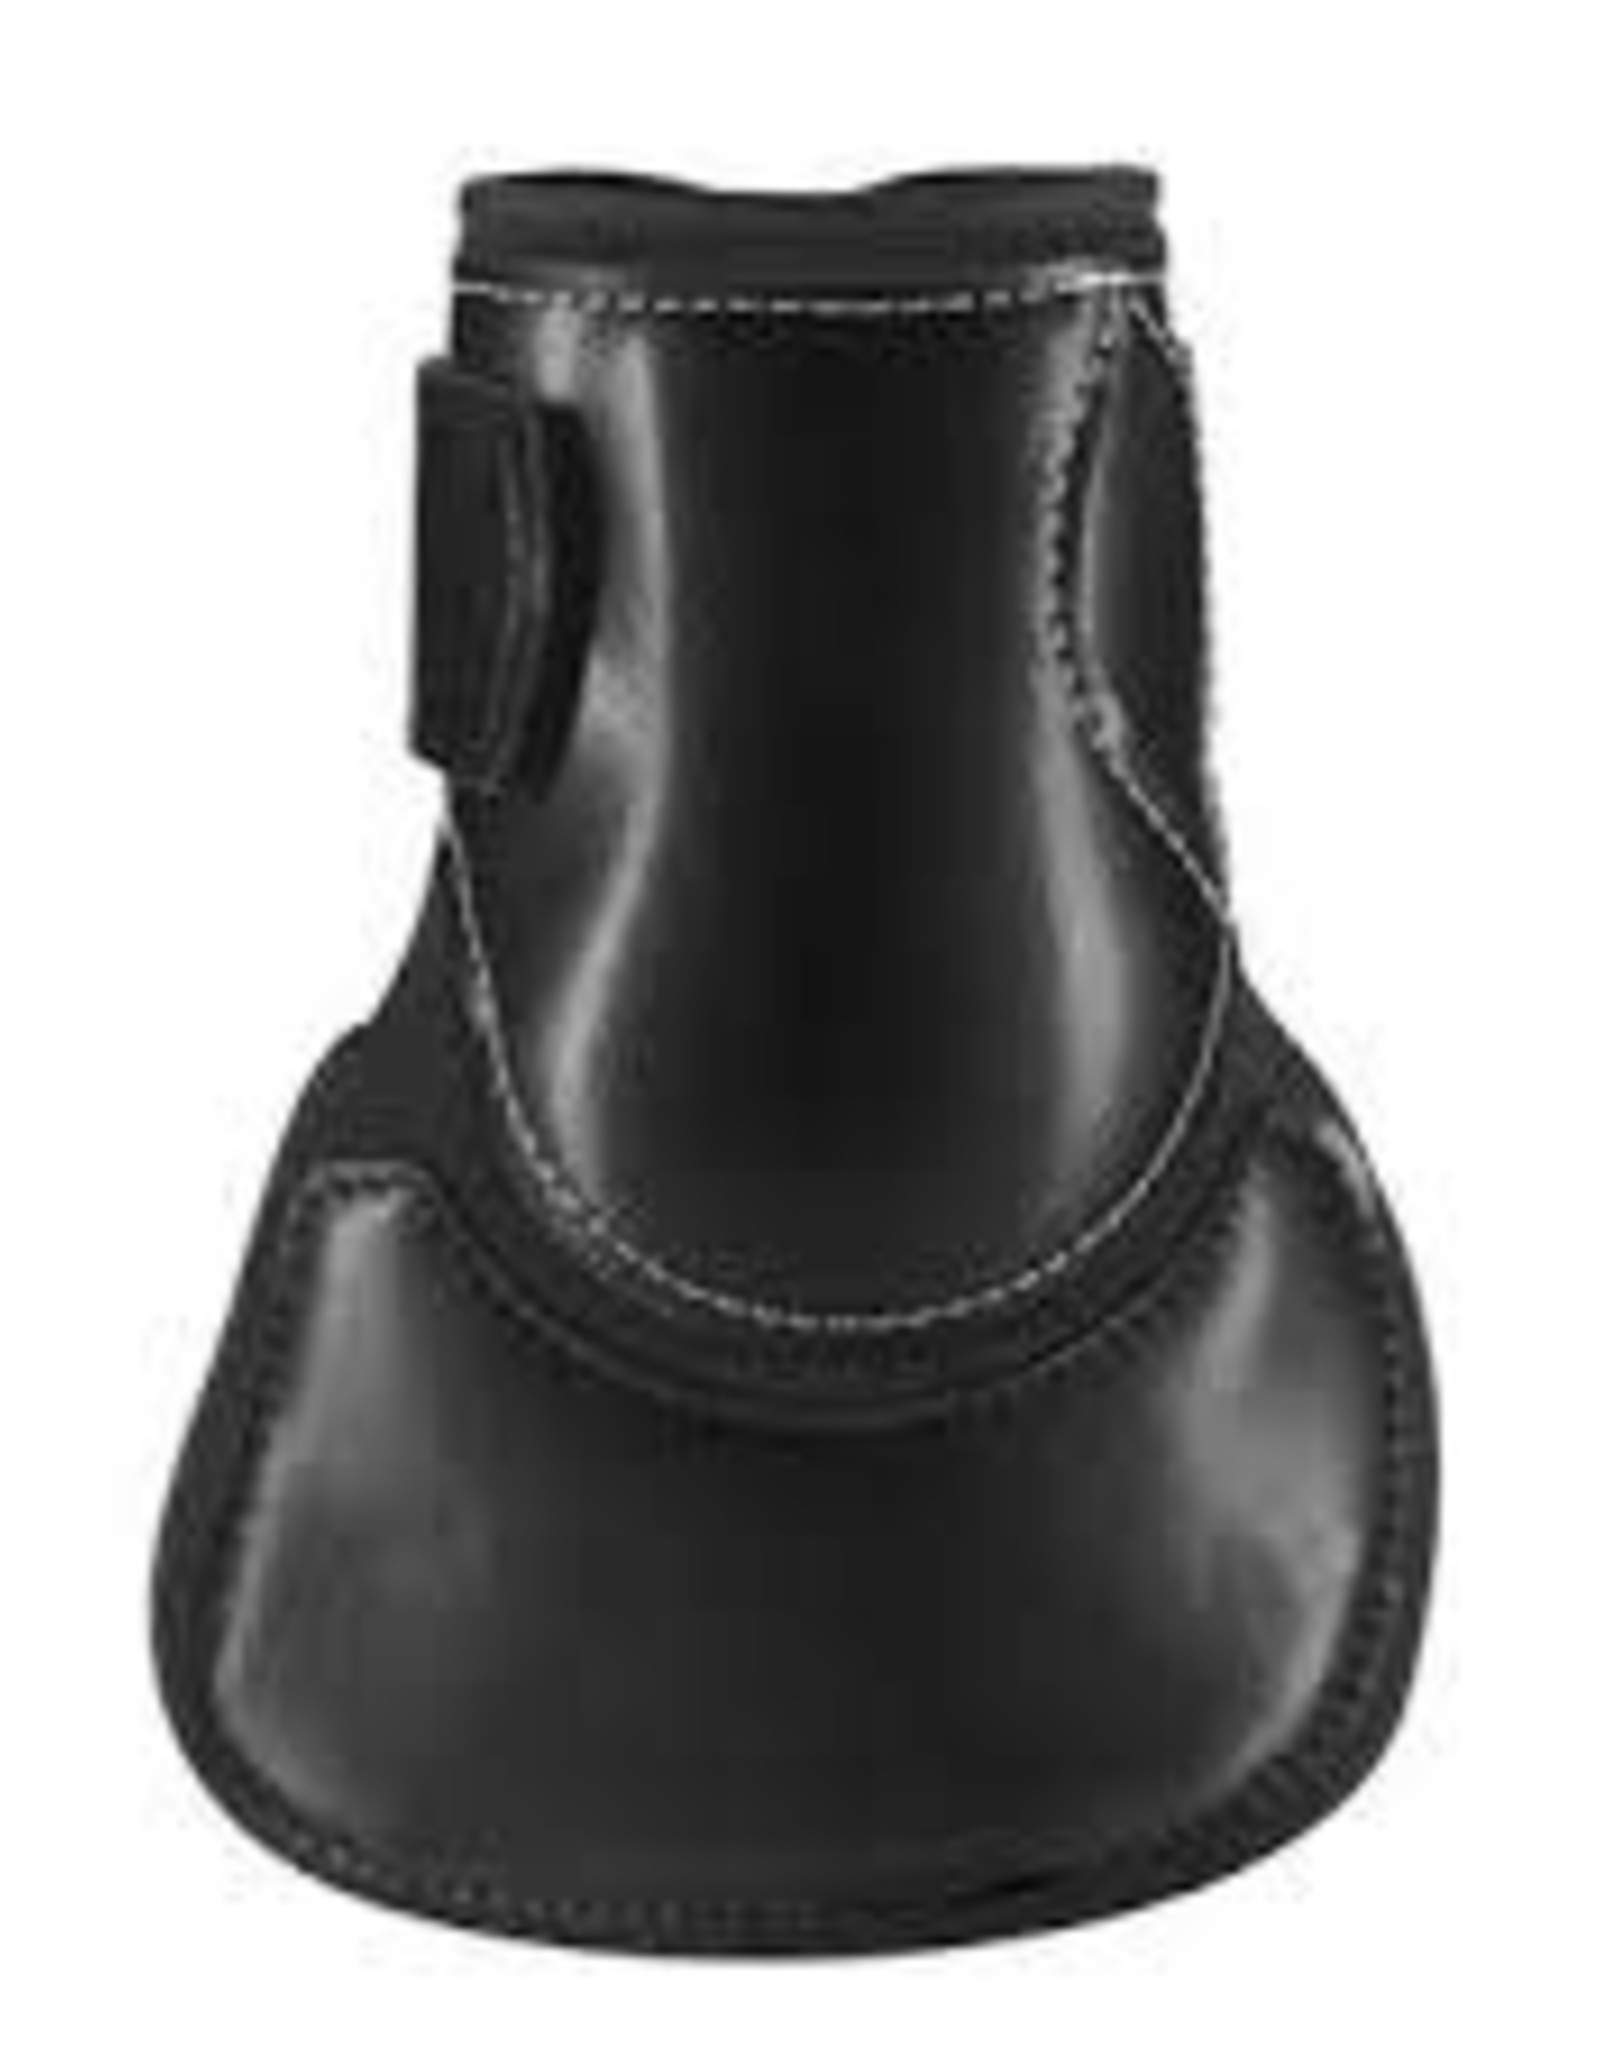 EQUIFIT YOUNG HORSE BOOT W/EXTENDED LINER - IMPACTEQ